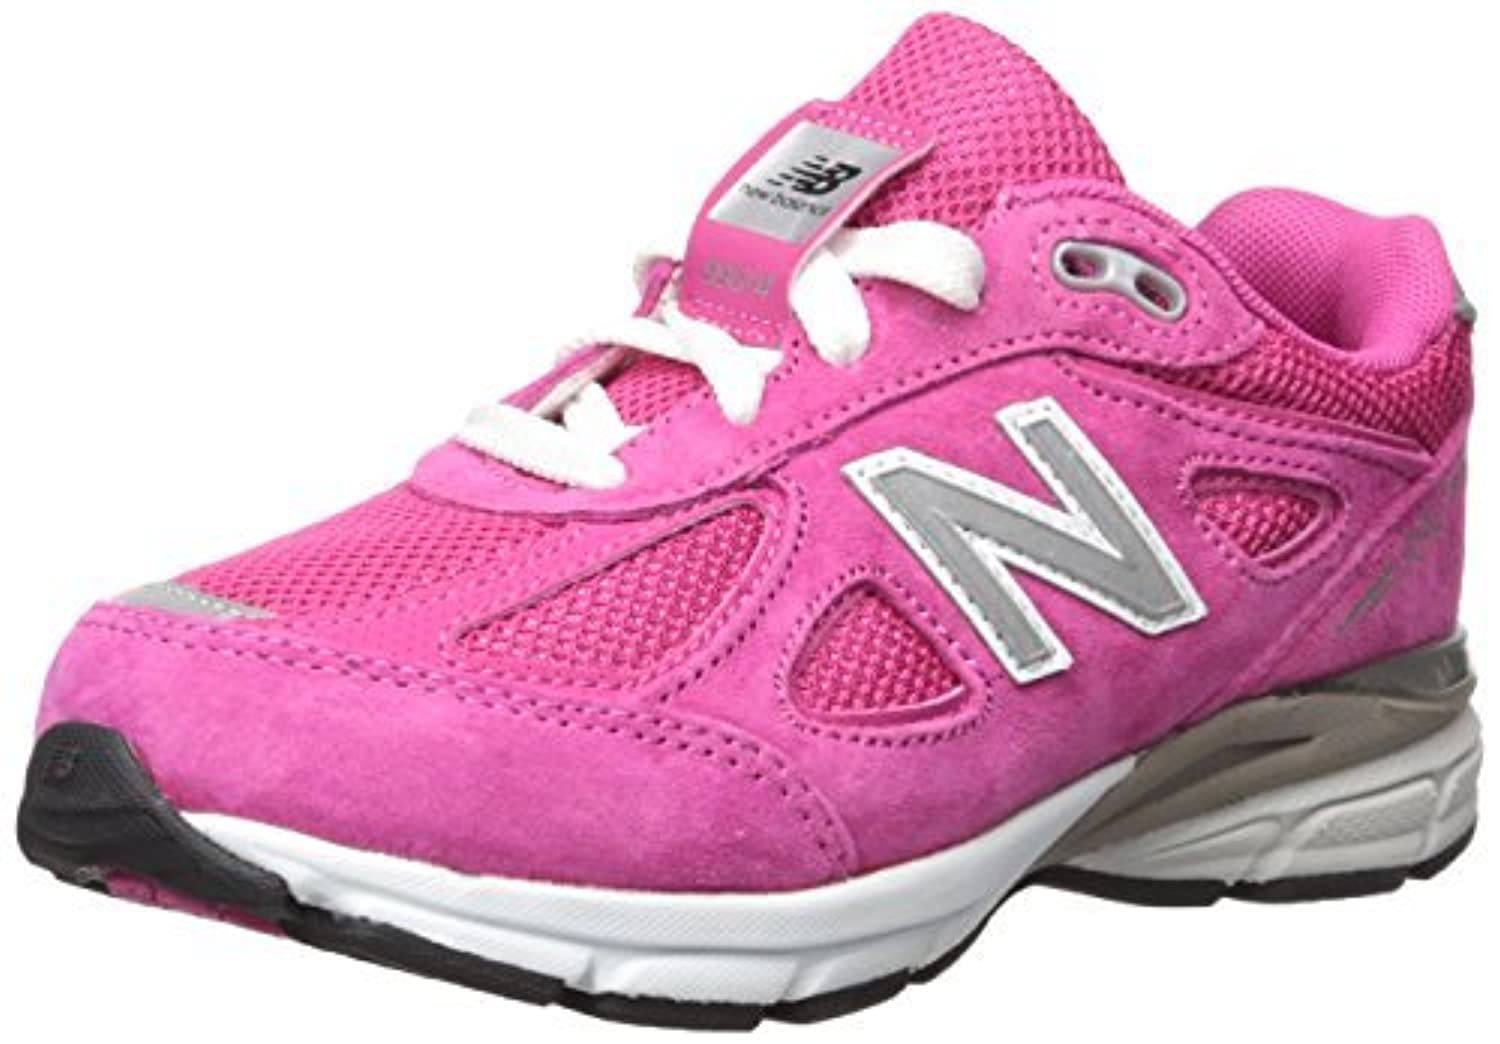 New Balance KJ990V4 Running Shoe (Little Kid/Big Kid) Pink/Pink 11.5 M US Little Kid [並行輸入品]